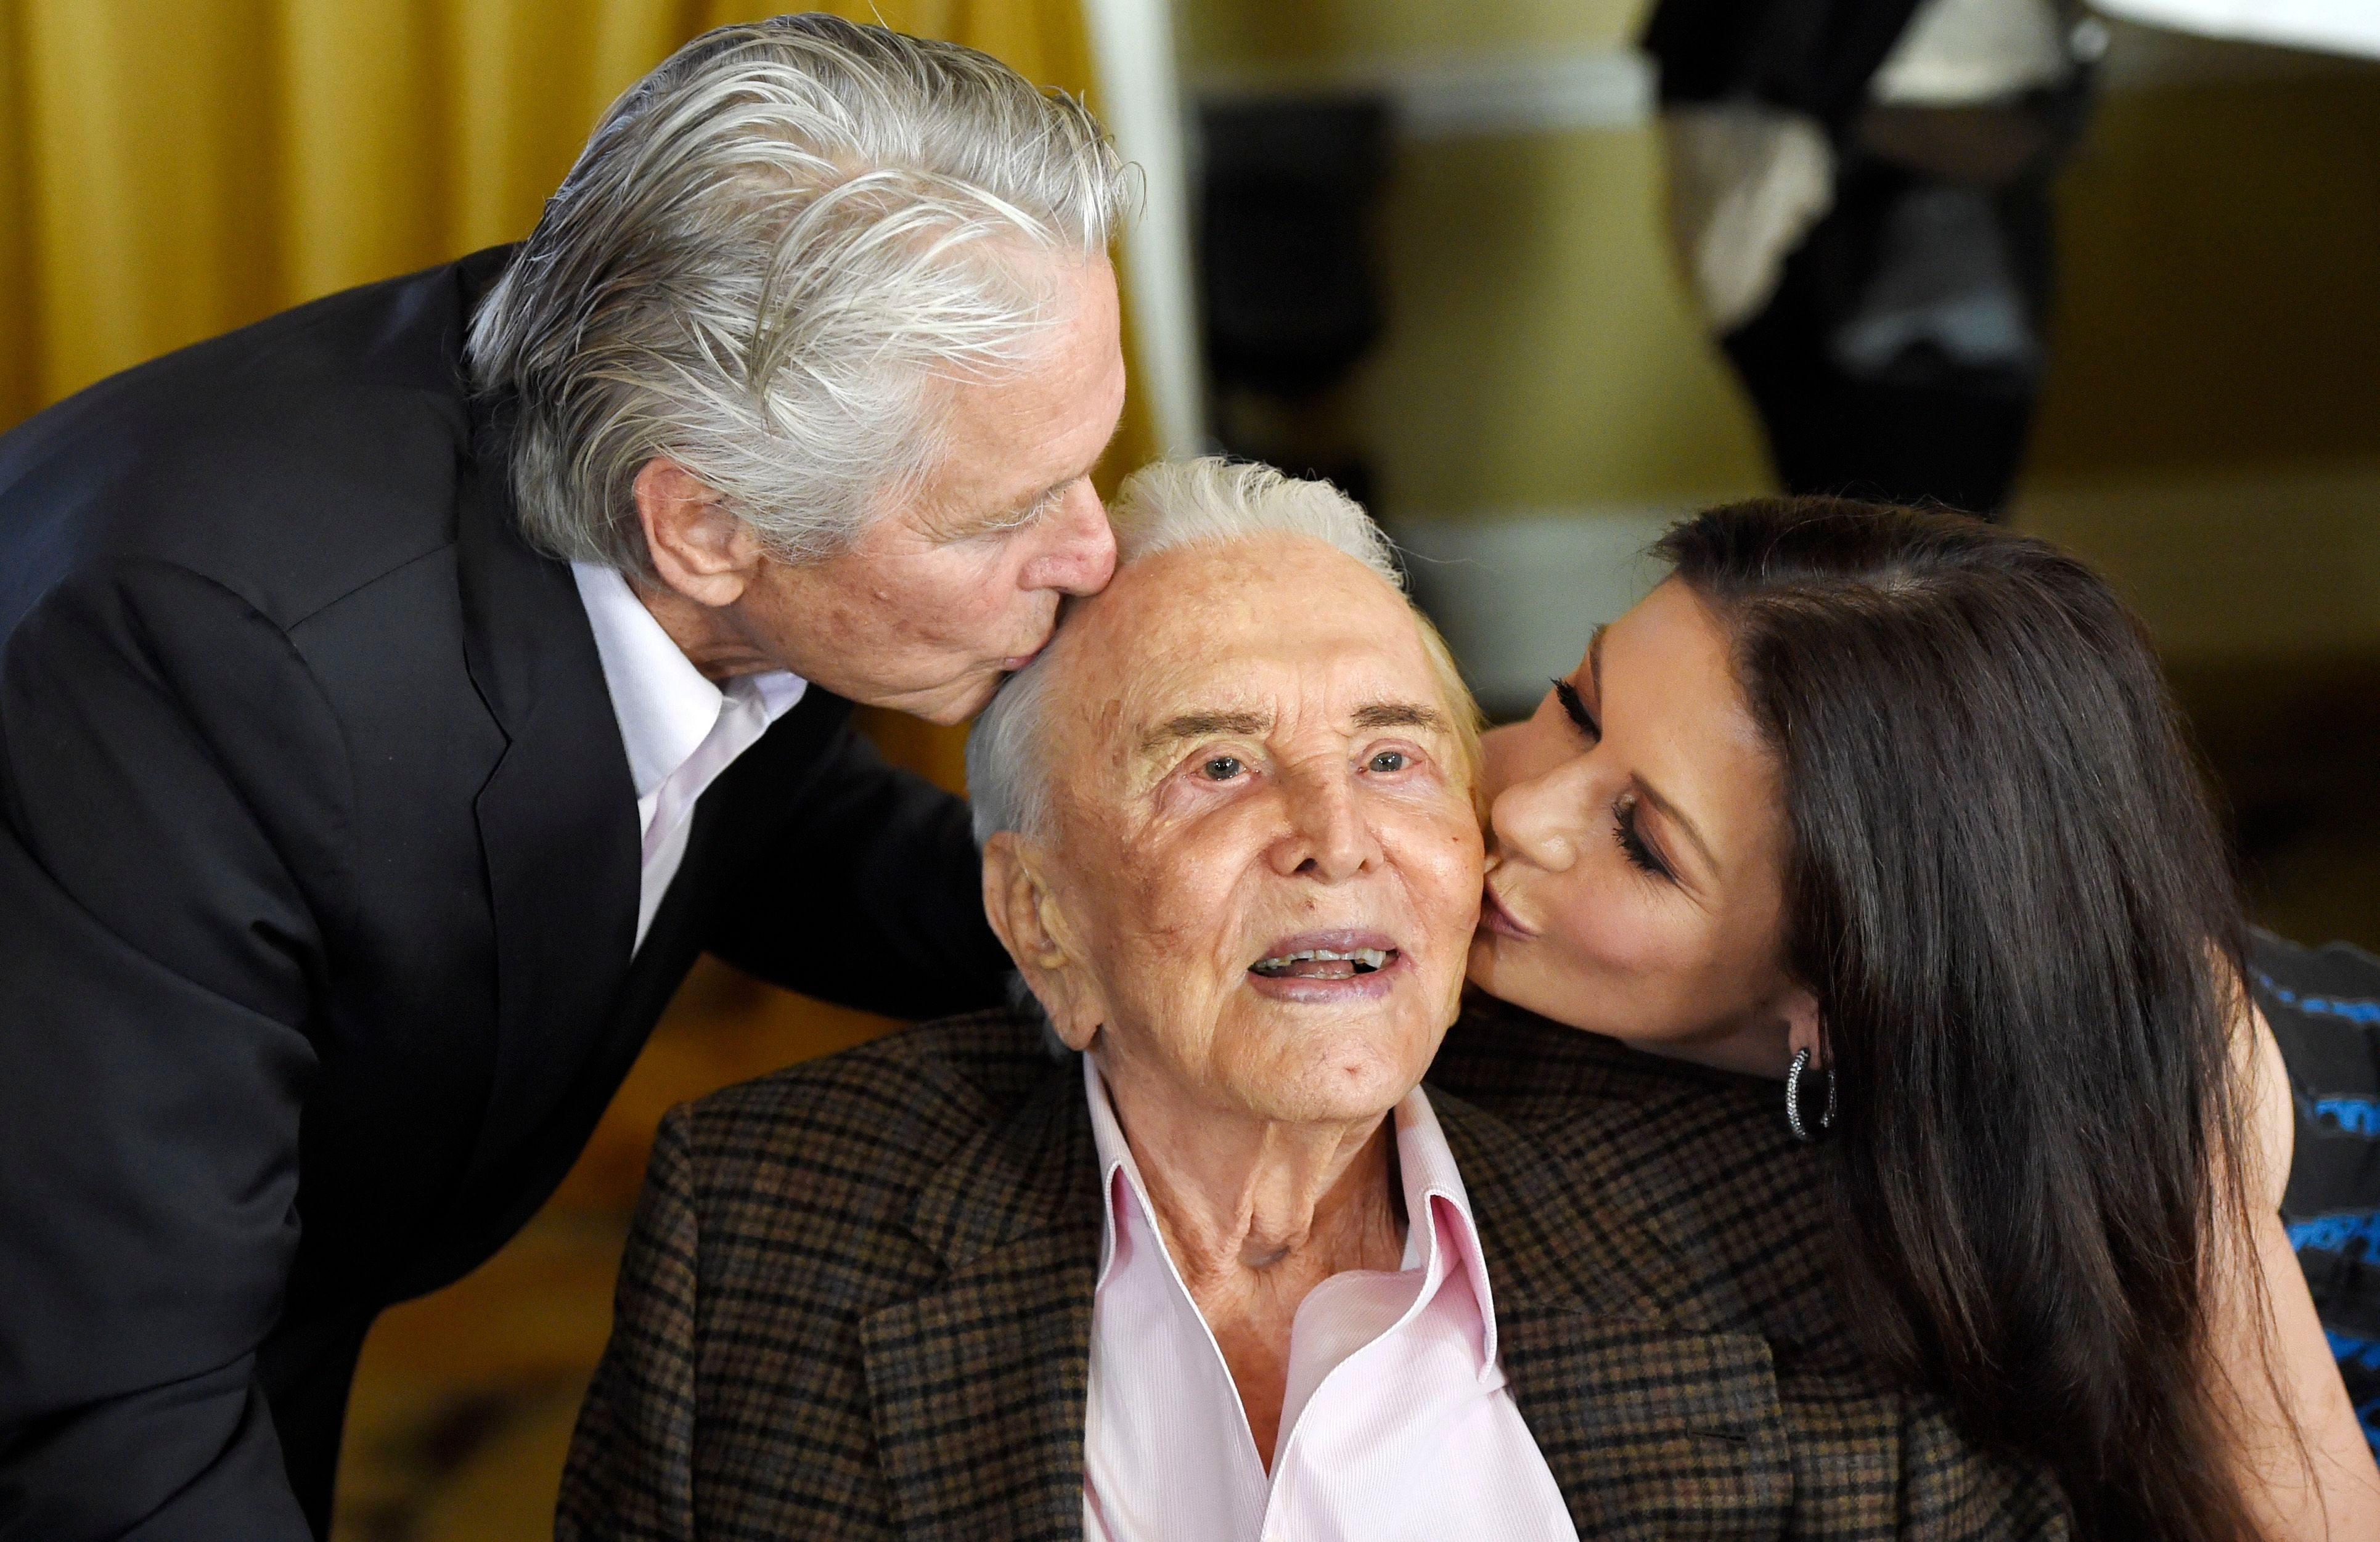 Kirk Douglas Jokingly Tells Son Michael the Secret to a Long Marriage Is to 'Obey Your Wife'